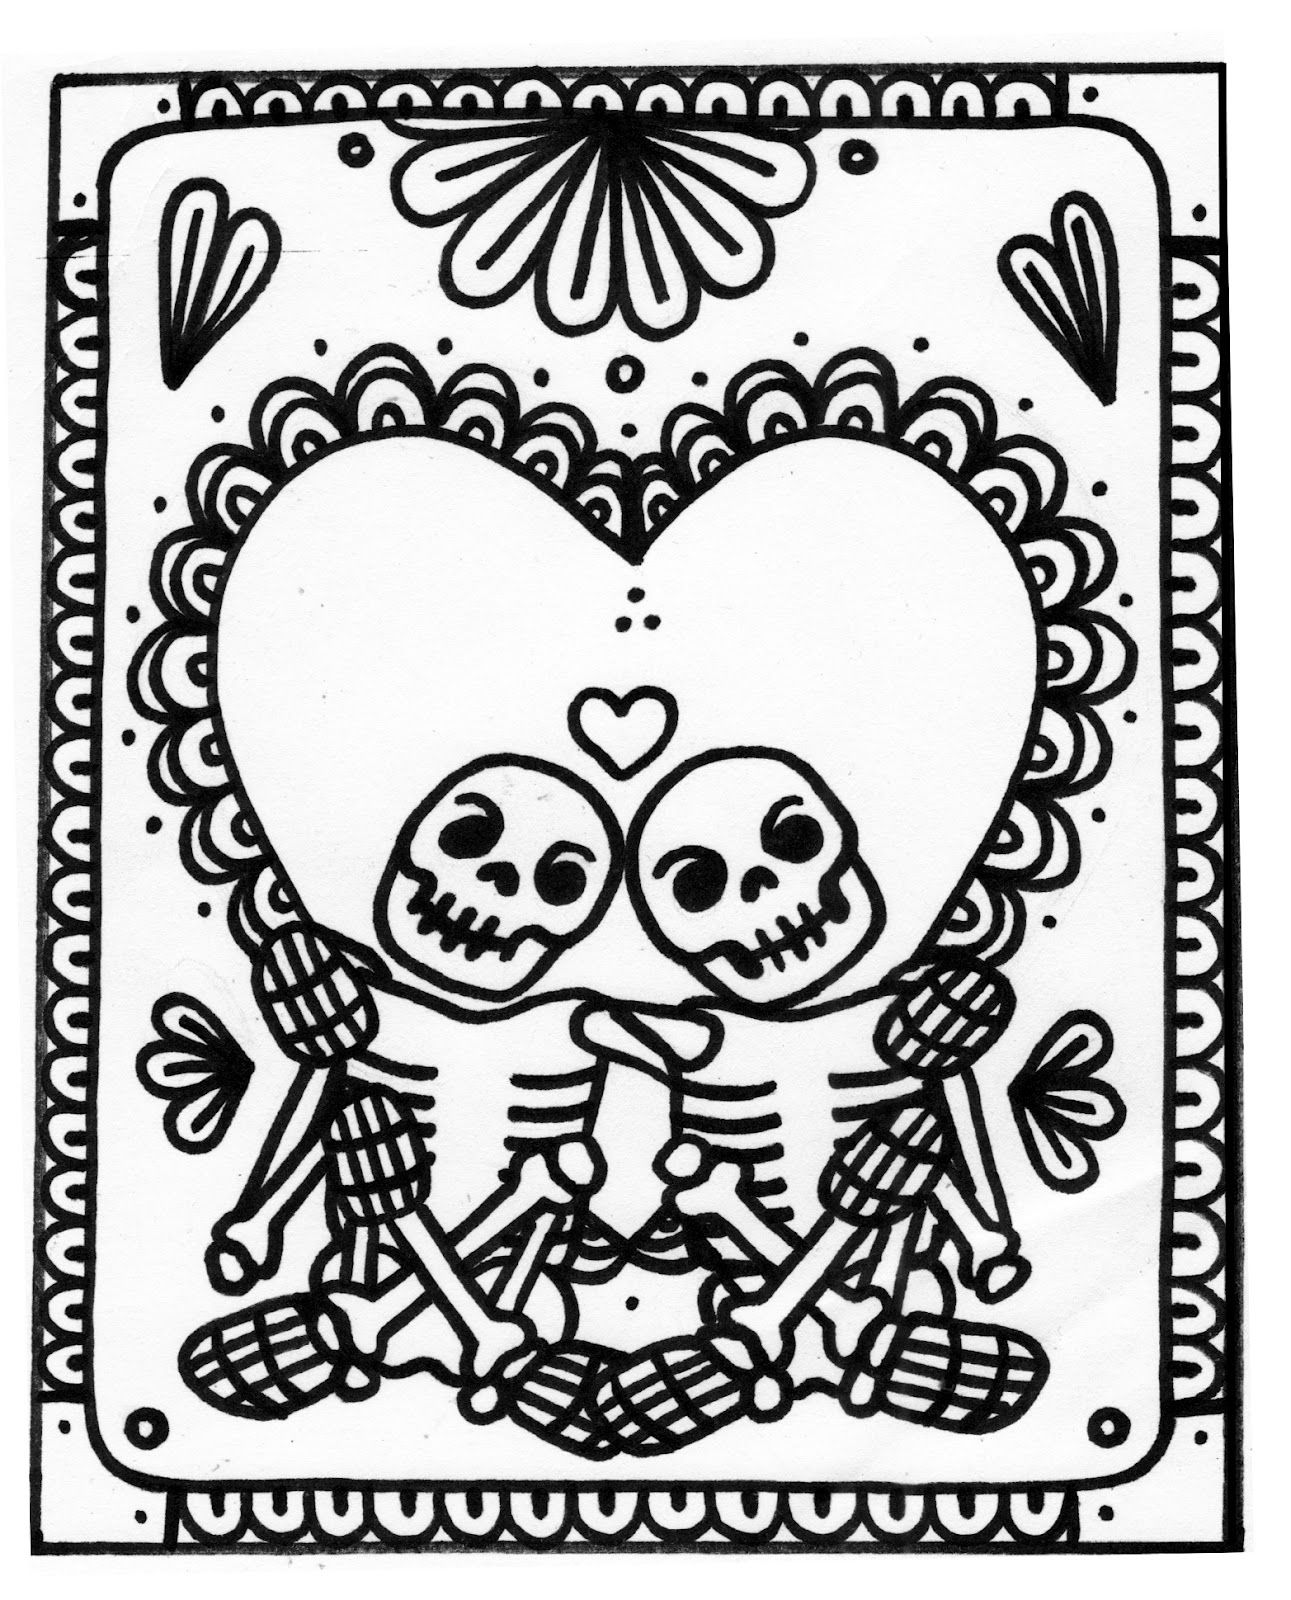 Wenchkin S Coloring Pages Valentine 3 Skeleton Love Skull